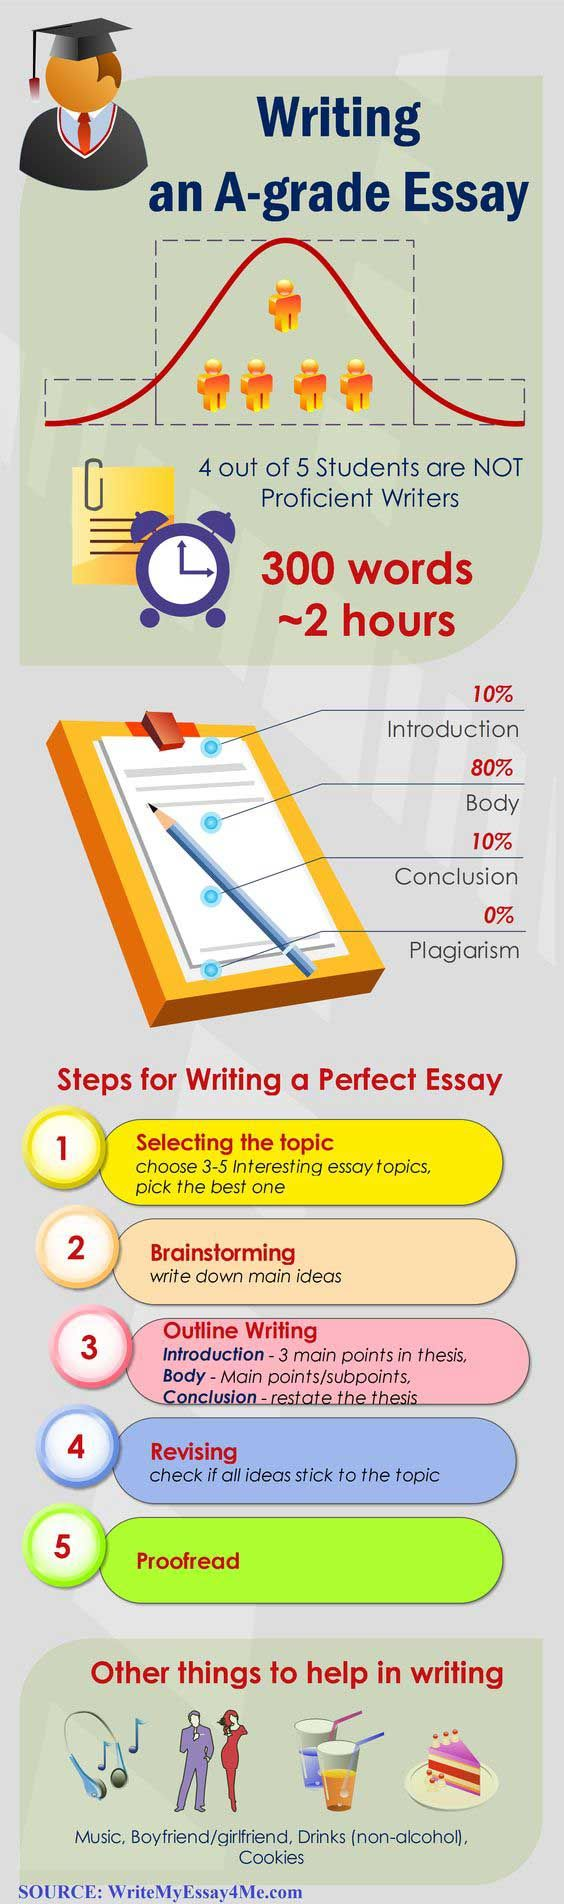 best images about writing stuff creative writing 18 infographics that will teach you how to write an a research paper or essay